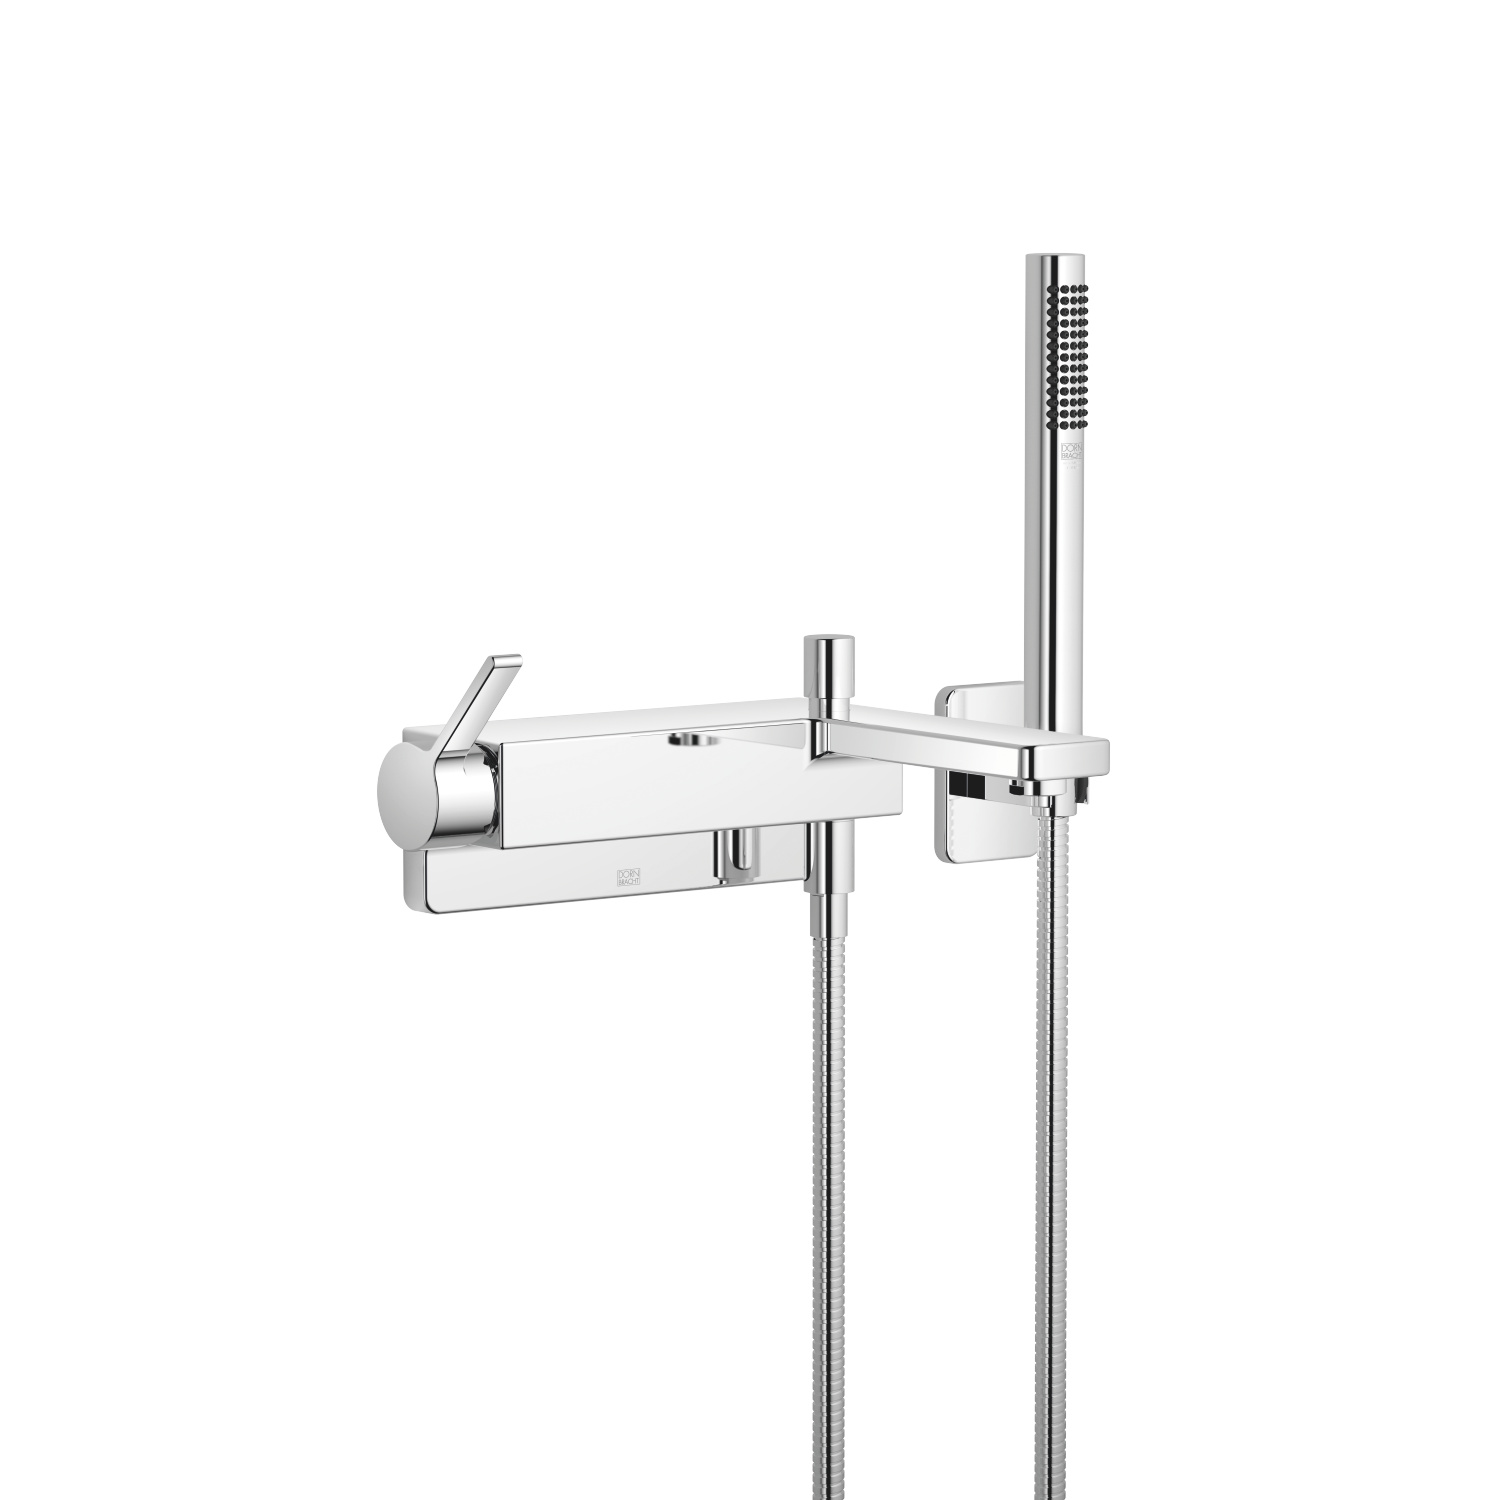 Single-lever bath mixer for wall mounting with hand shower set - polished chrome